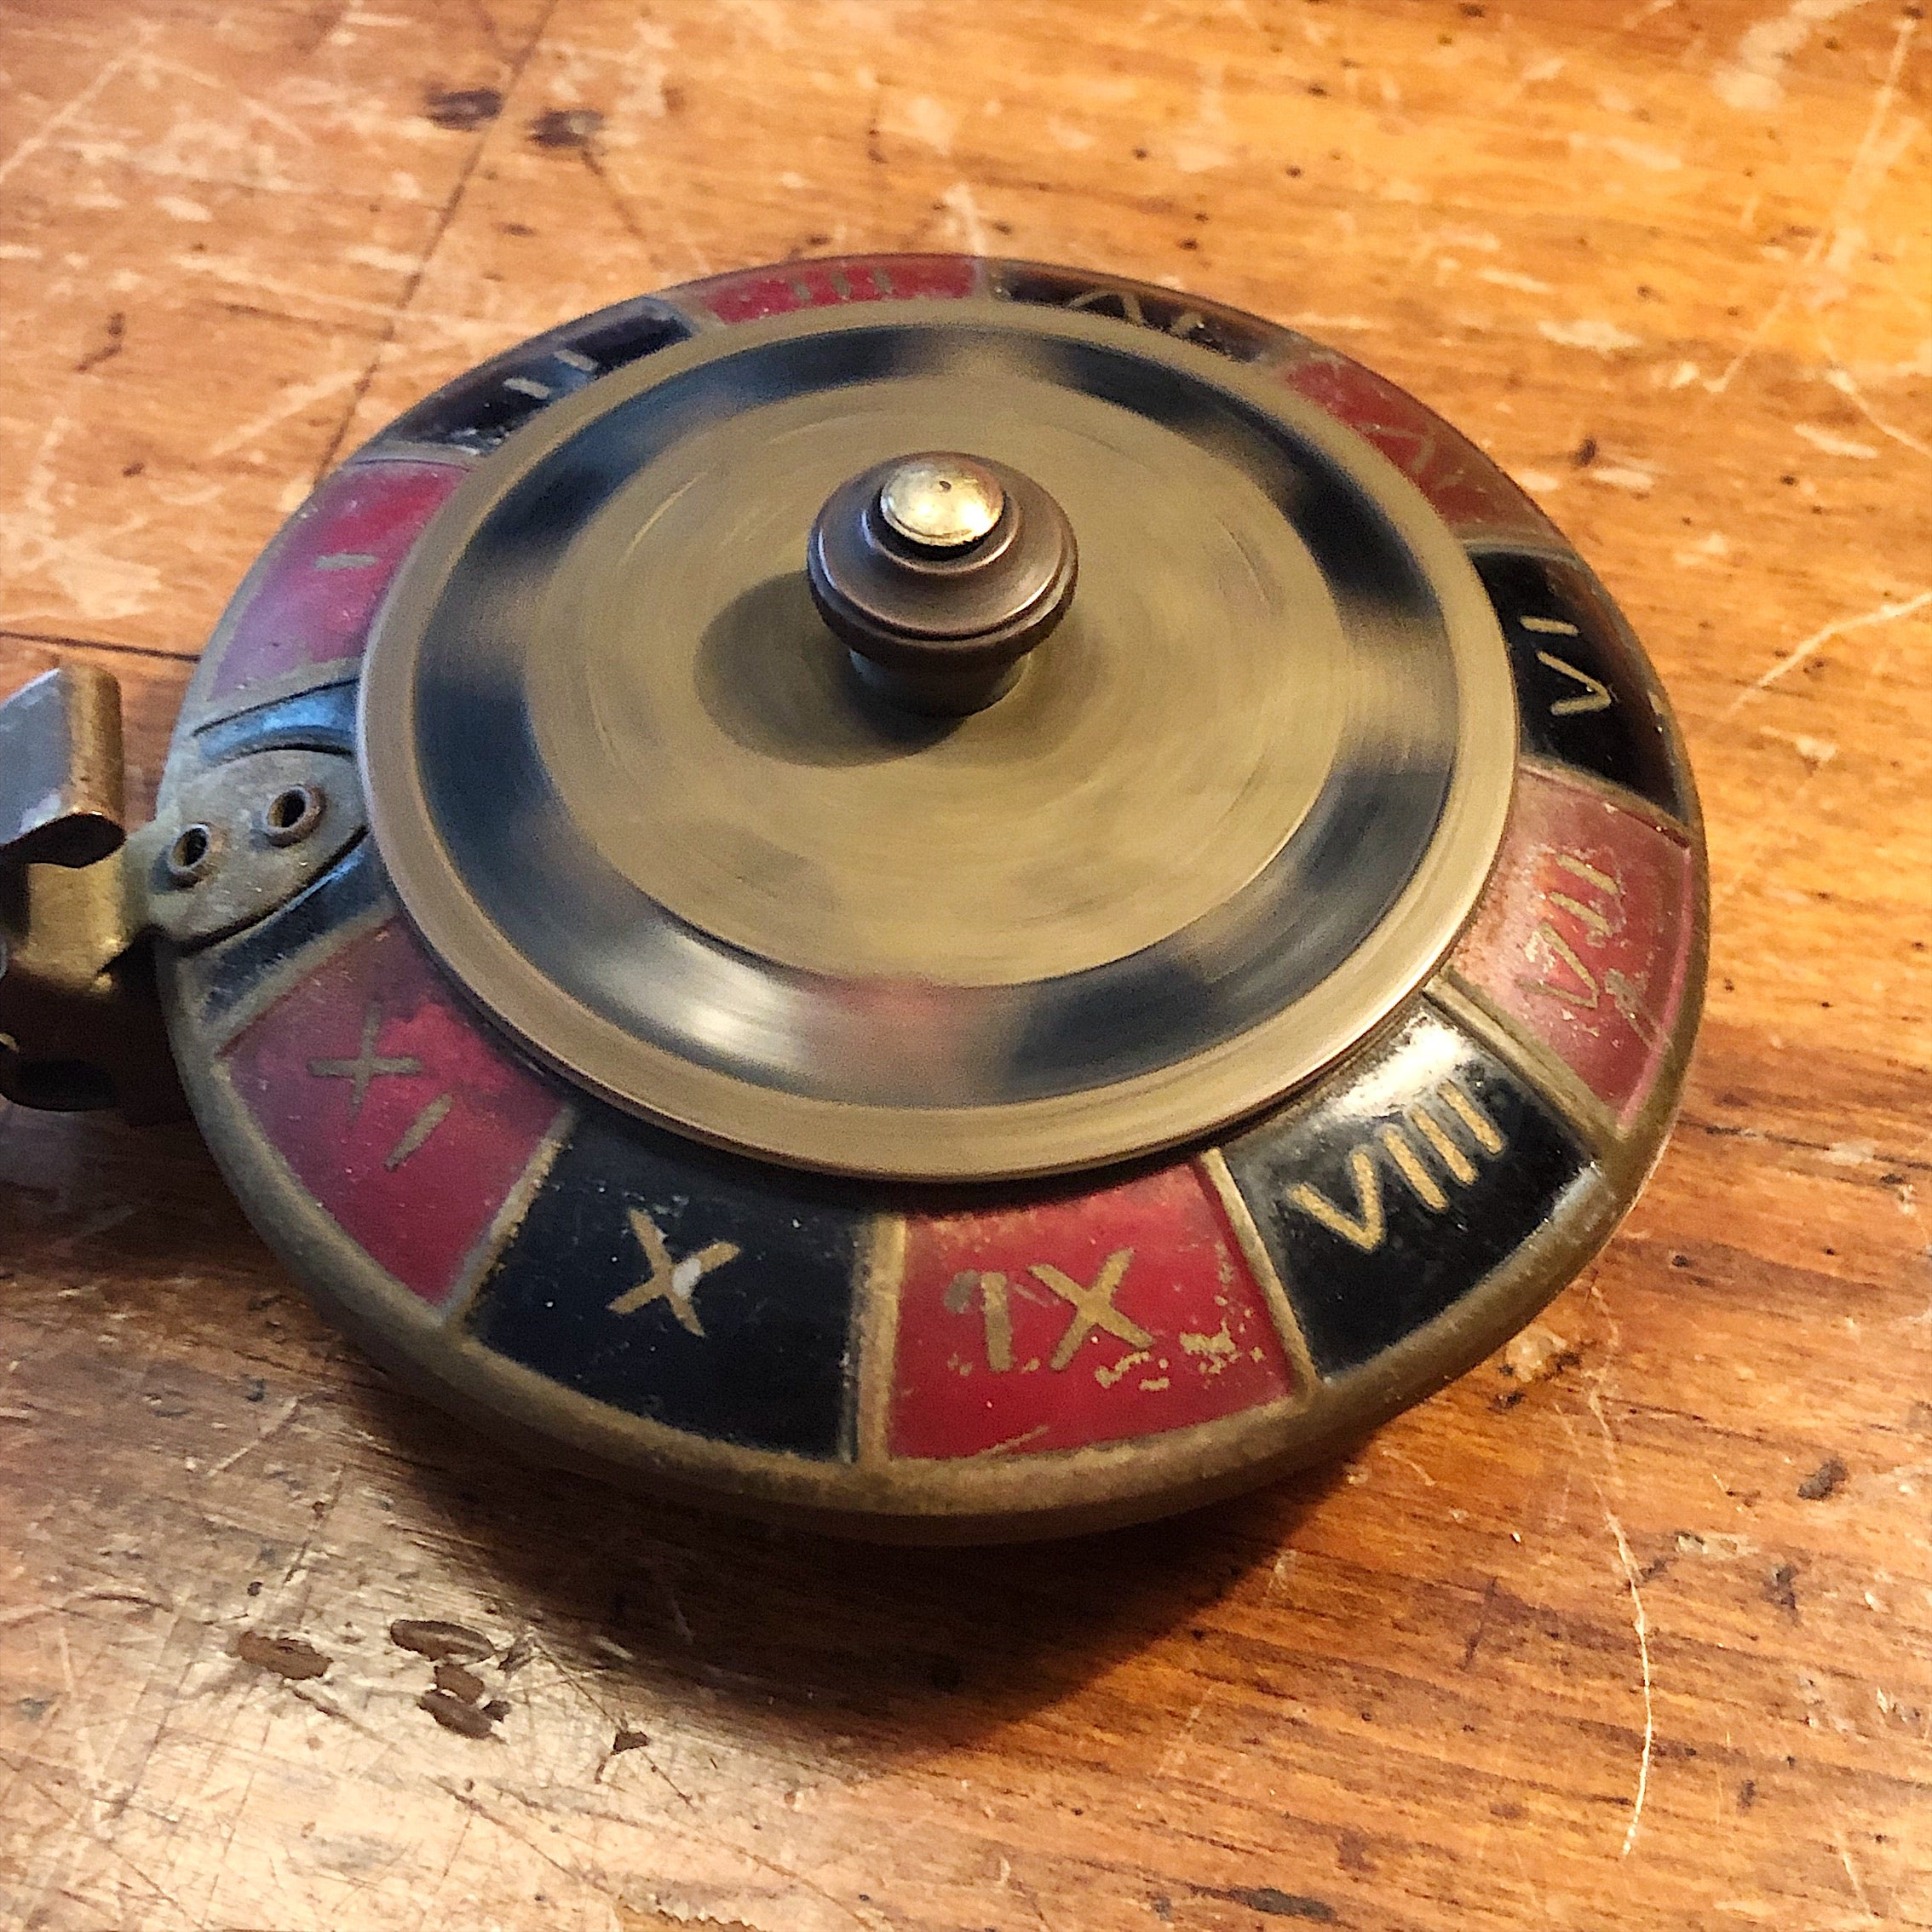 Vintage Roulette Ashtray - 1950s - Brass Gambling Collectible - Rare Vintage Tobacciana - Las Vegas Memorabilia